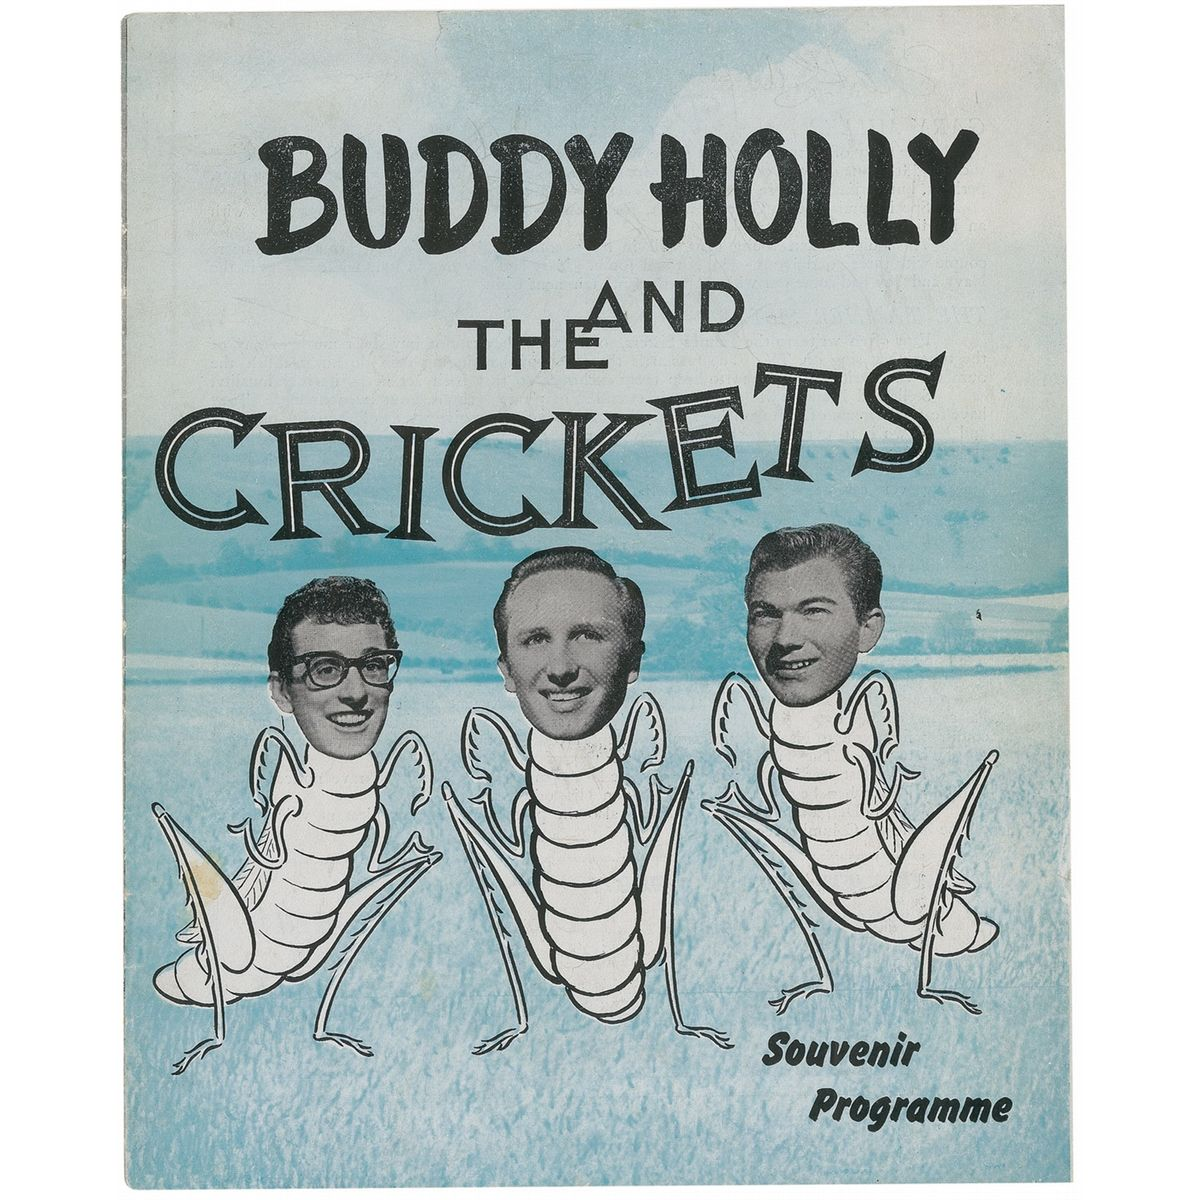 Buddy Holly & the Crickets - souvenir programm1